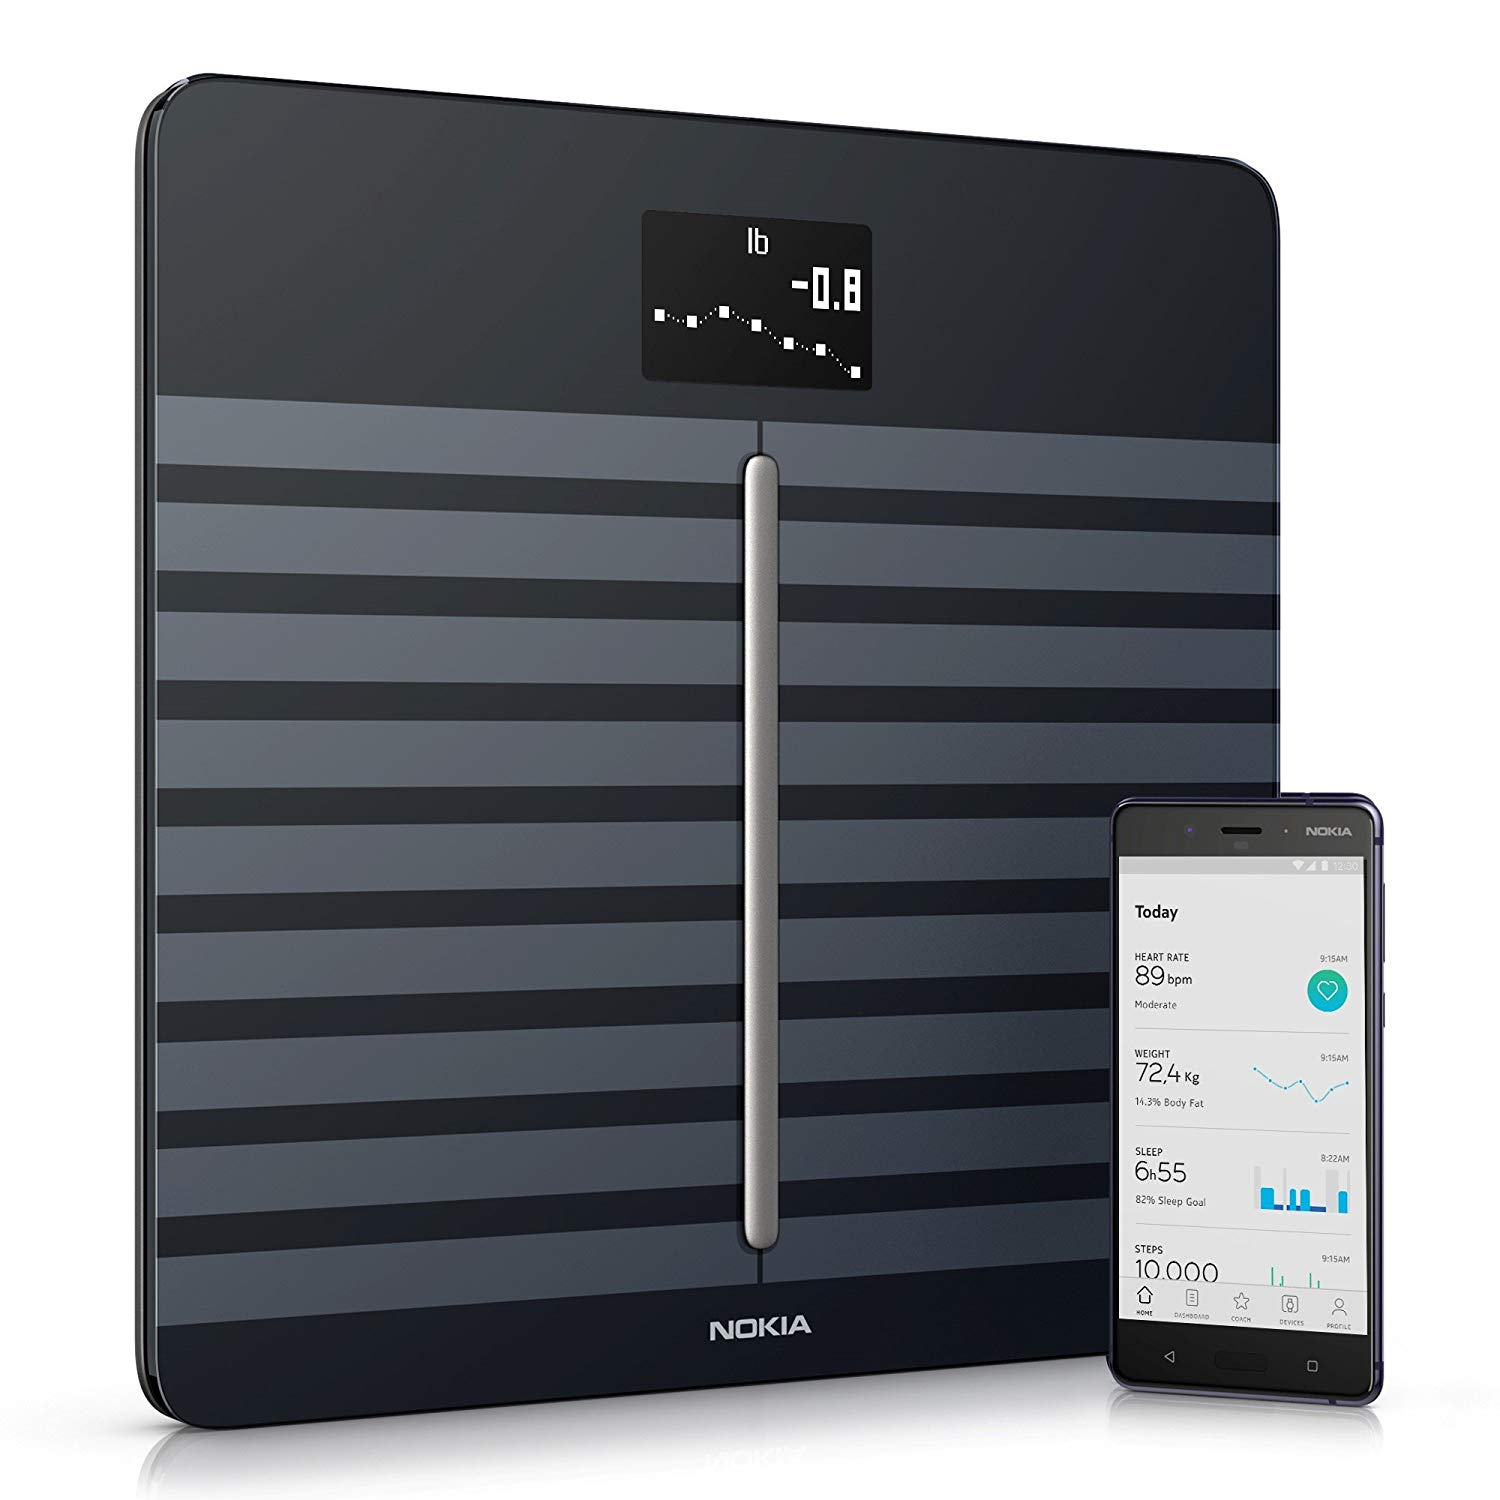 Nokia Body Cardio Wi-Fi Smart Scale with Body Composition and Heart Rate